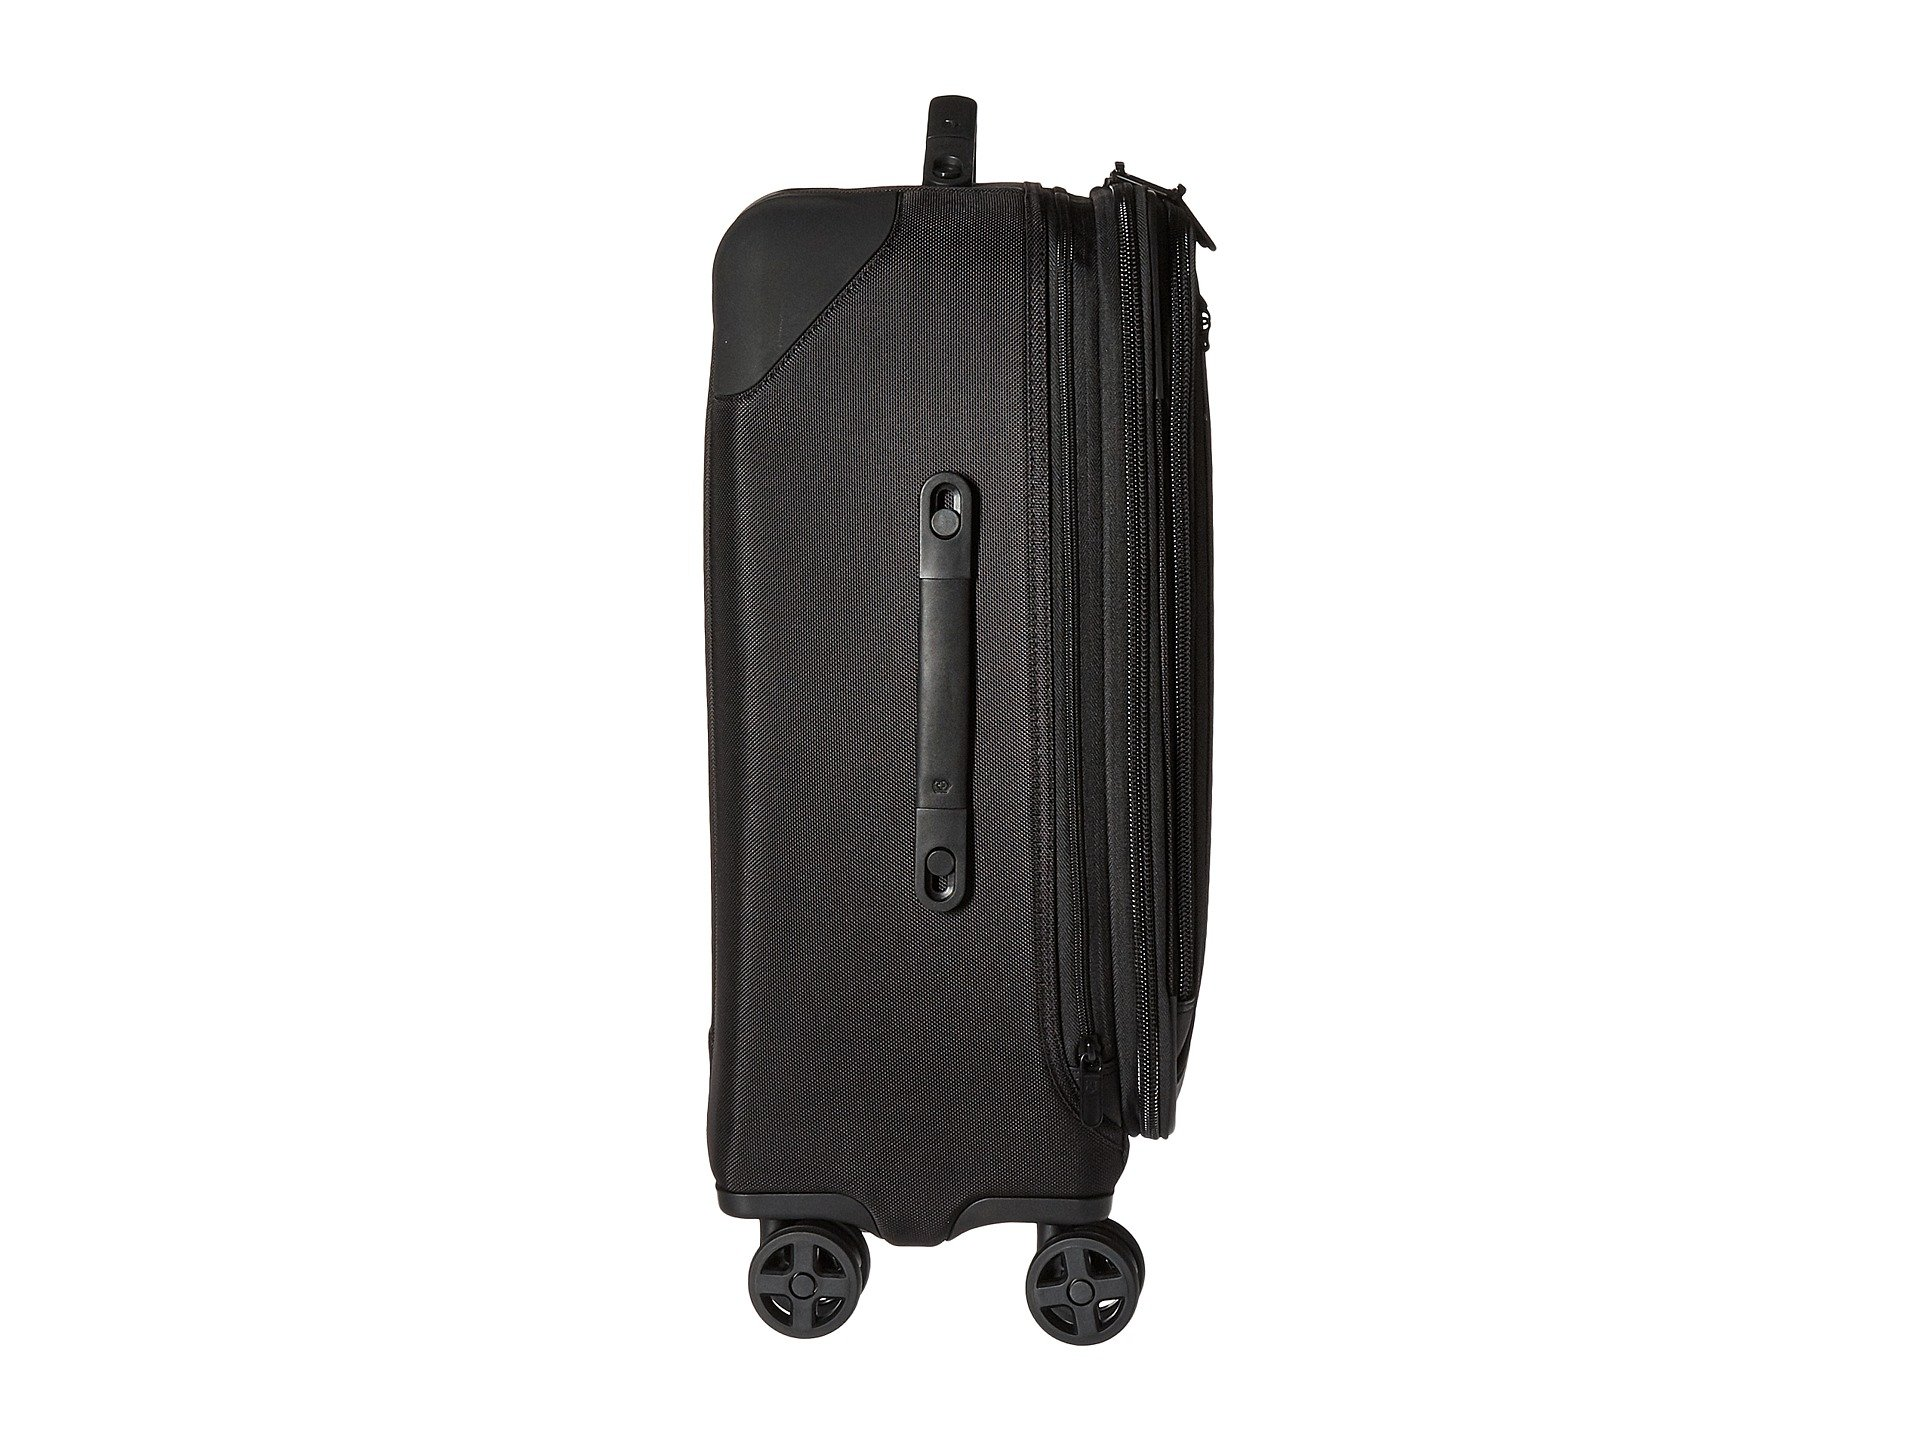 Carry on 2 0 Lexicon caster Dual Victorinox Black Large 6WYvqwUn0